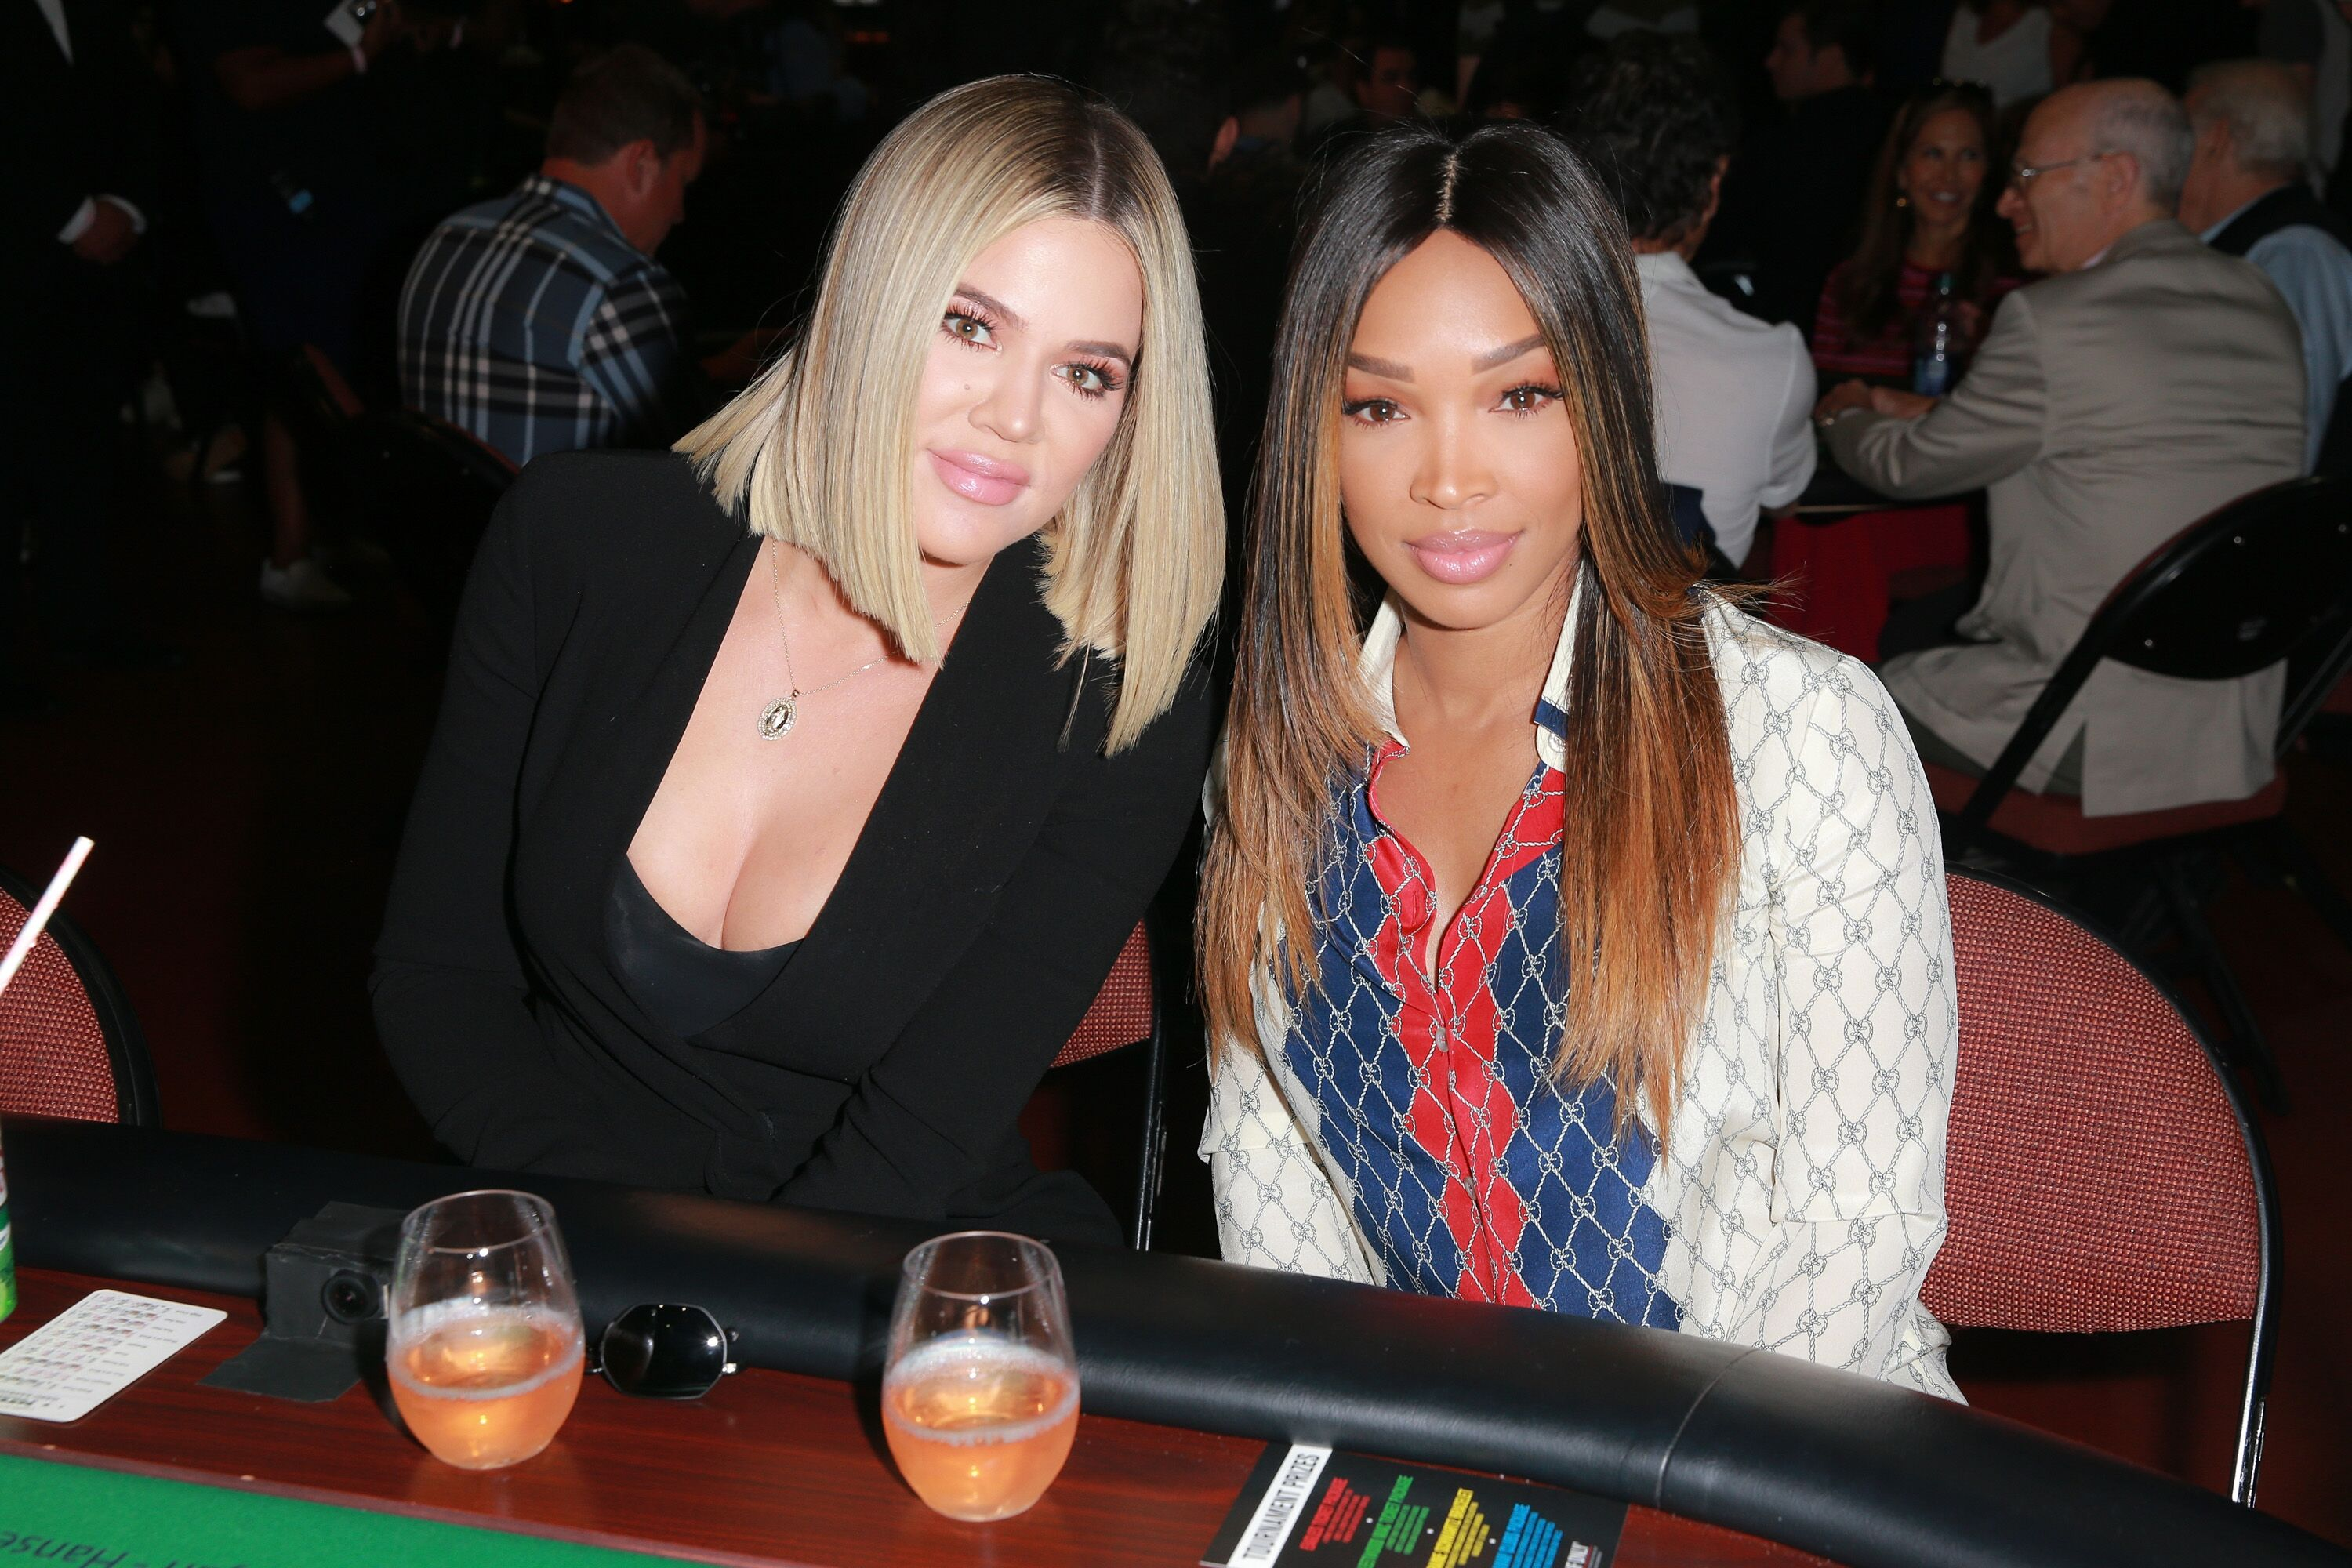 Actress Malika Haqq with her celebrity BFF Khloé Kardashian at a charity poker tournament in 2018/ Source: Getty Images